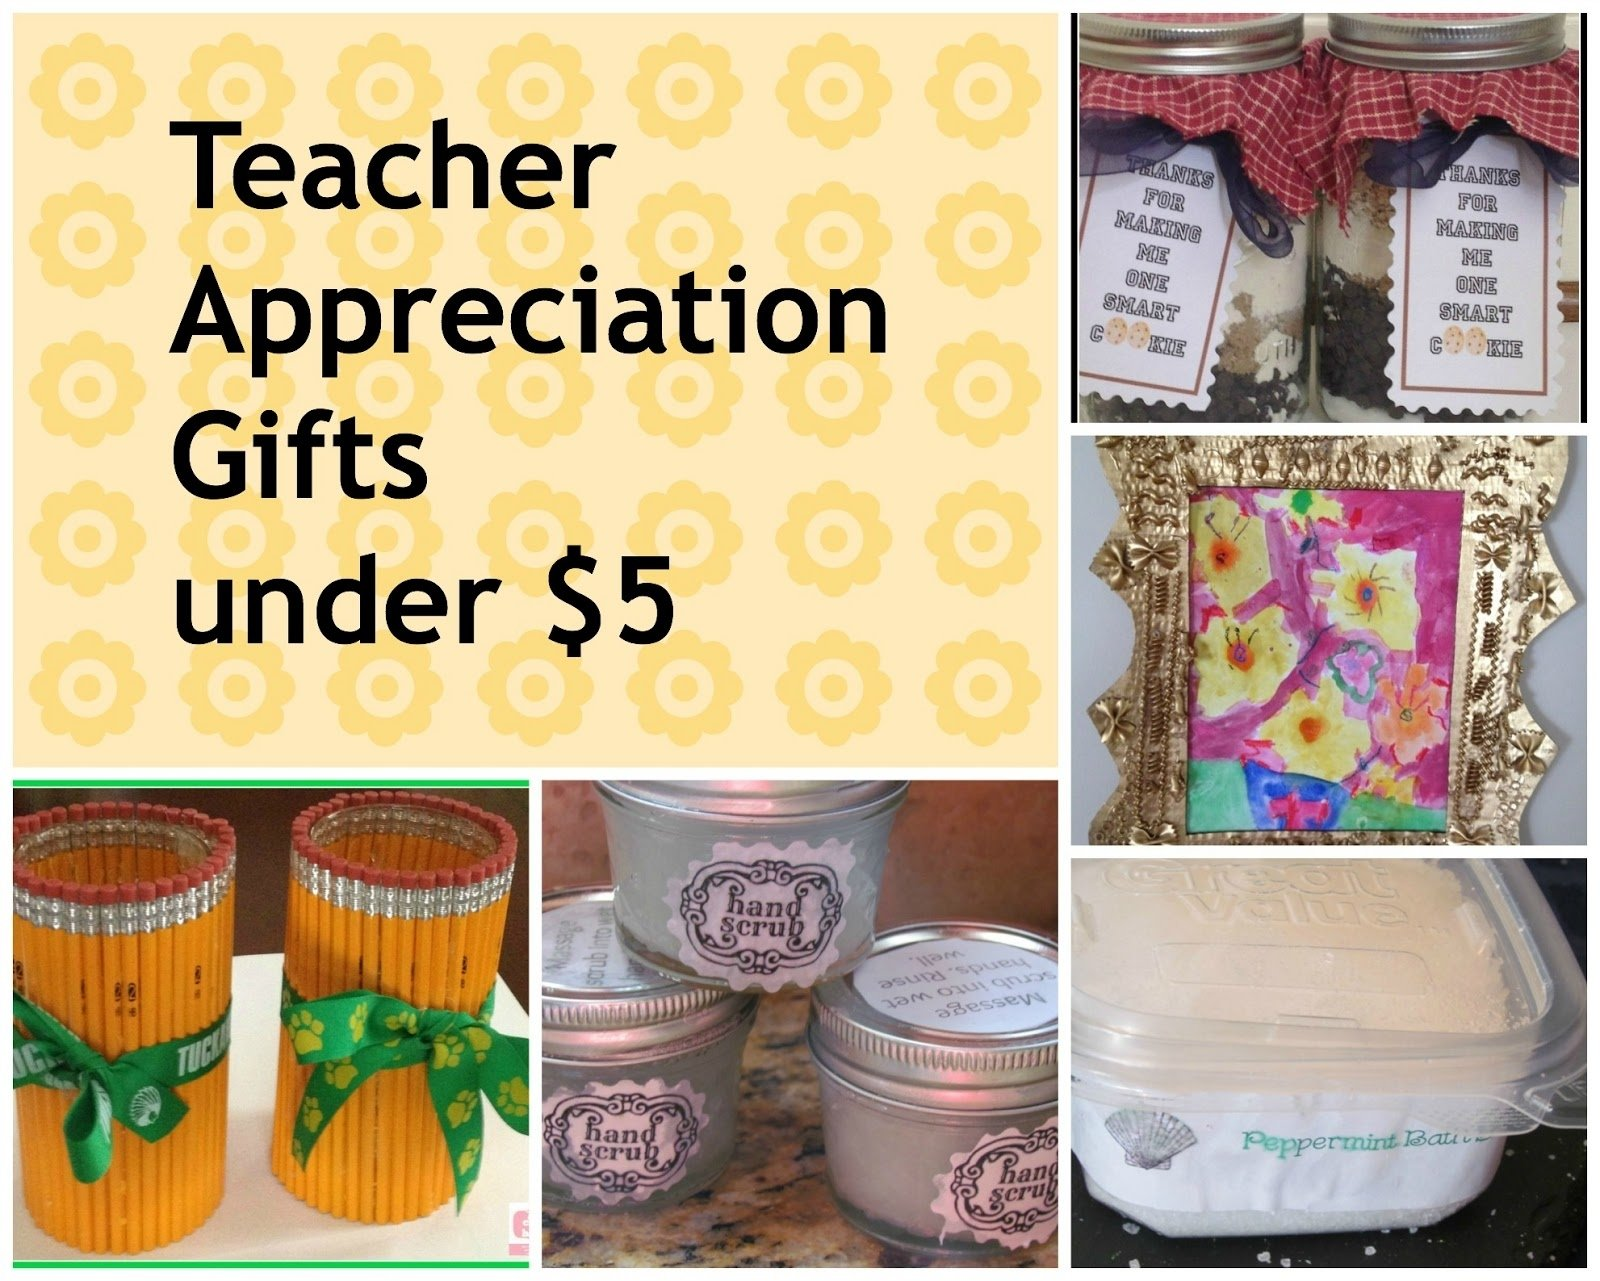 and handmade teacher apreciation gifts